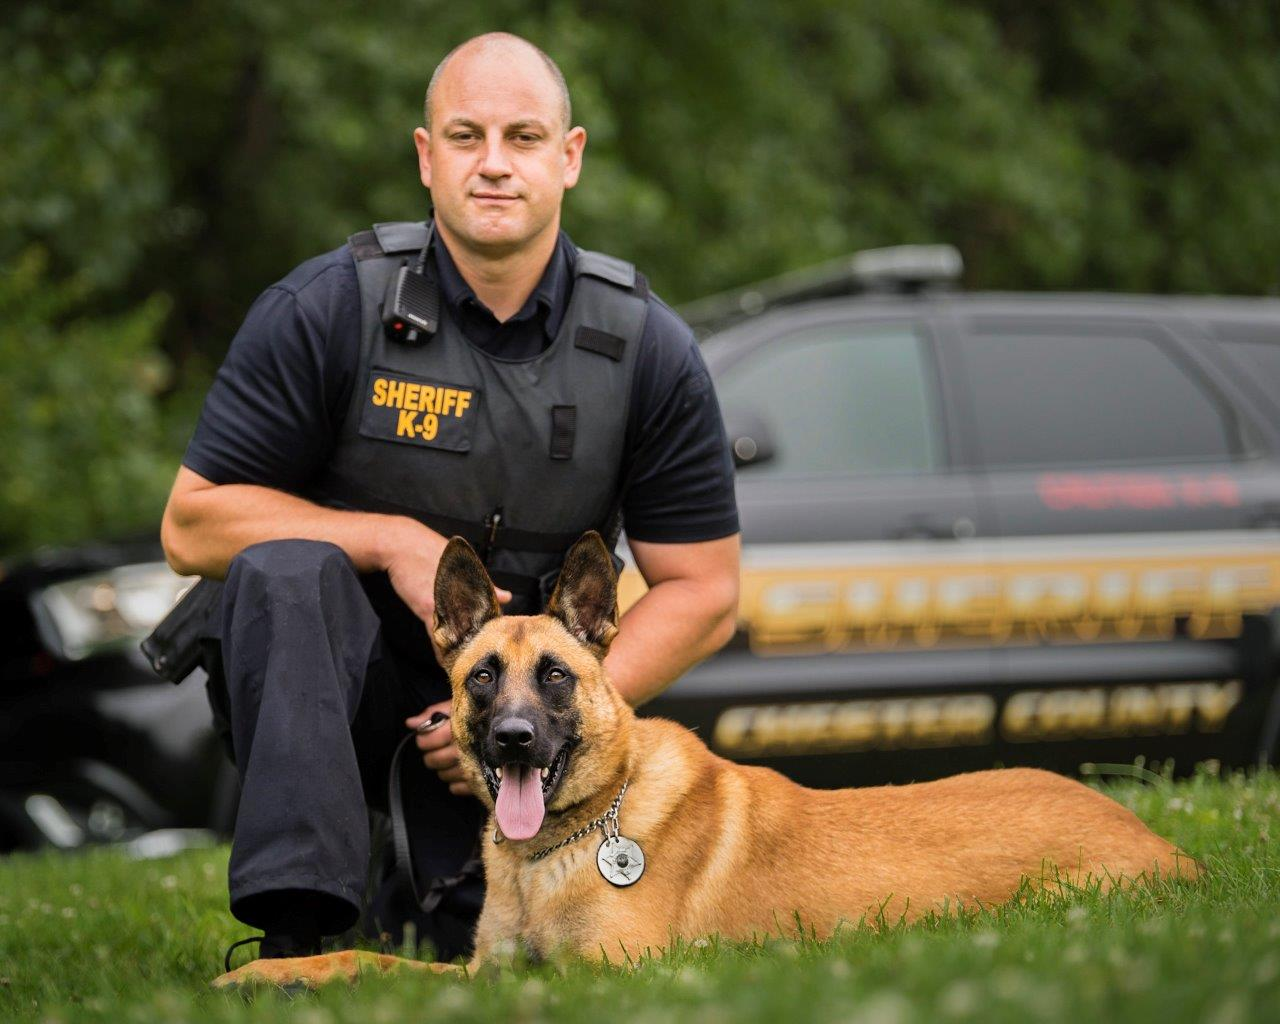 From Chesco: Phoenixville Native, Deputy Sheriff Rejects Special Treatment, Showcases Grit